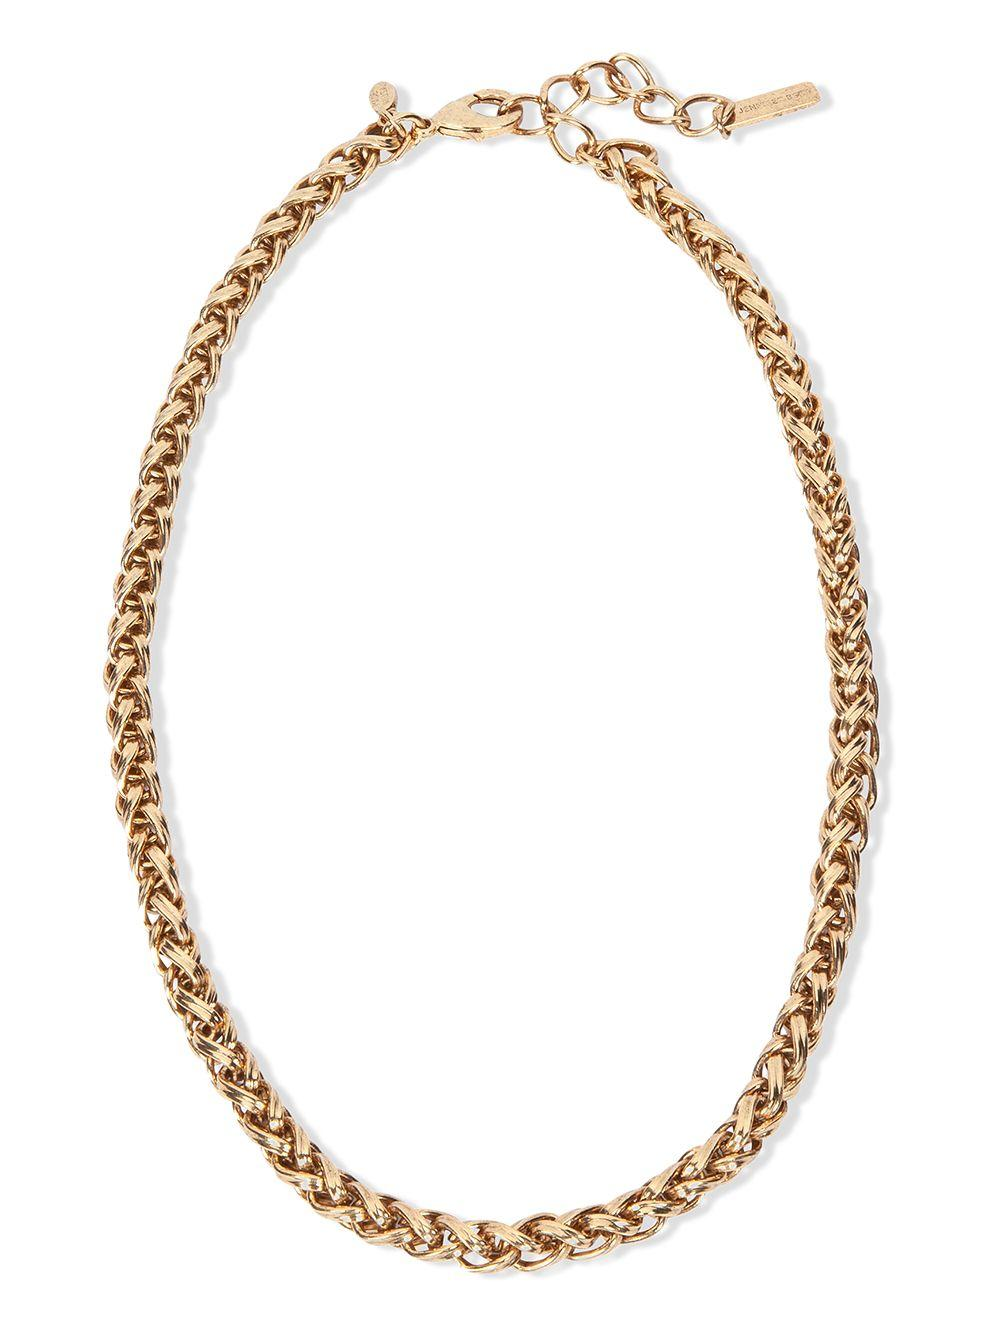 Paxton Chain Necklace Item # 111PA11